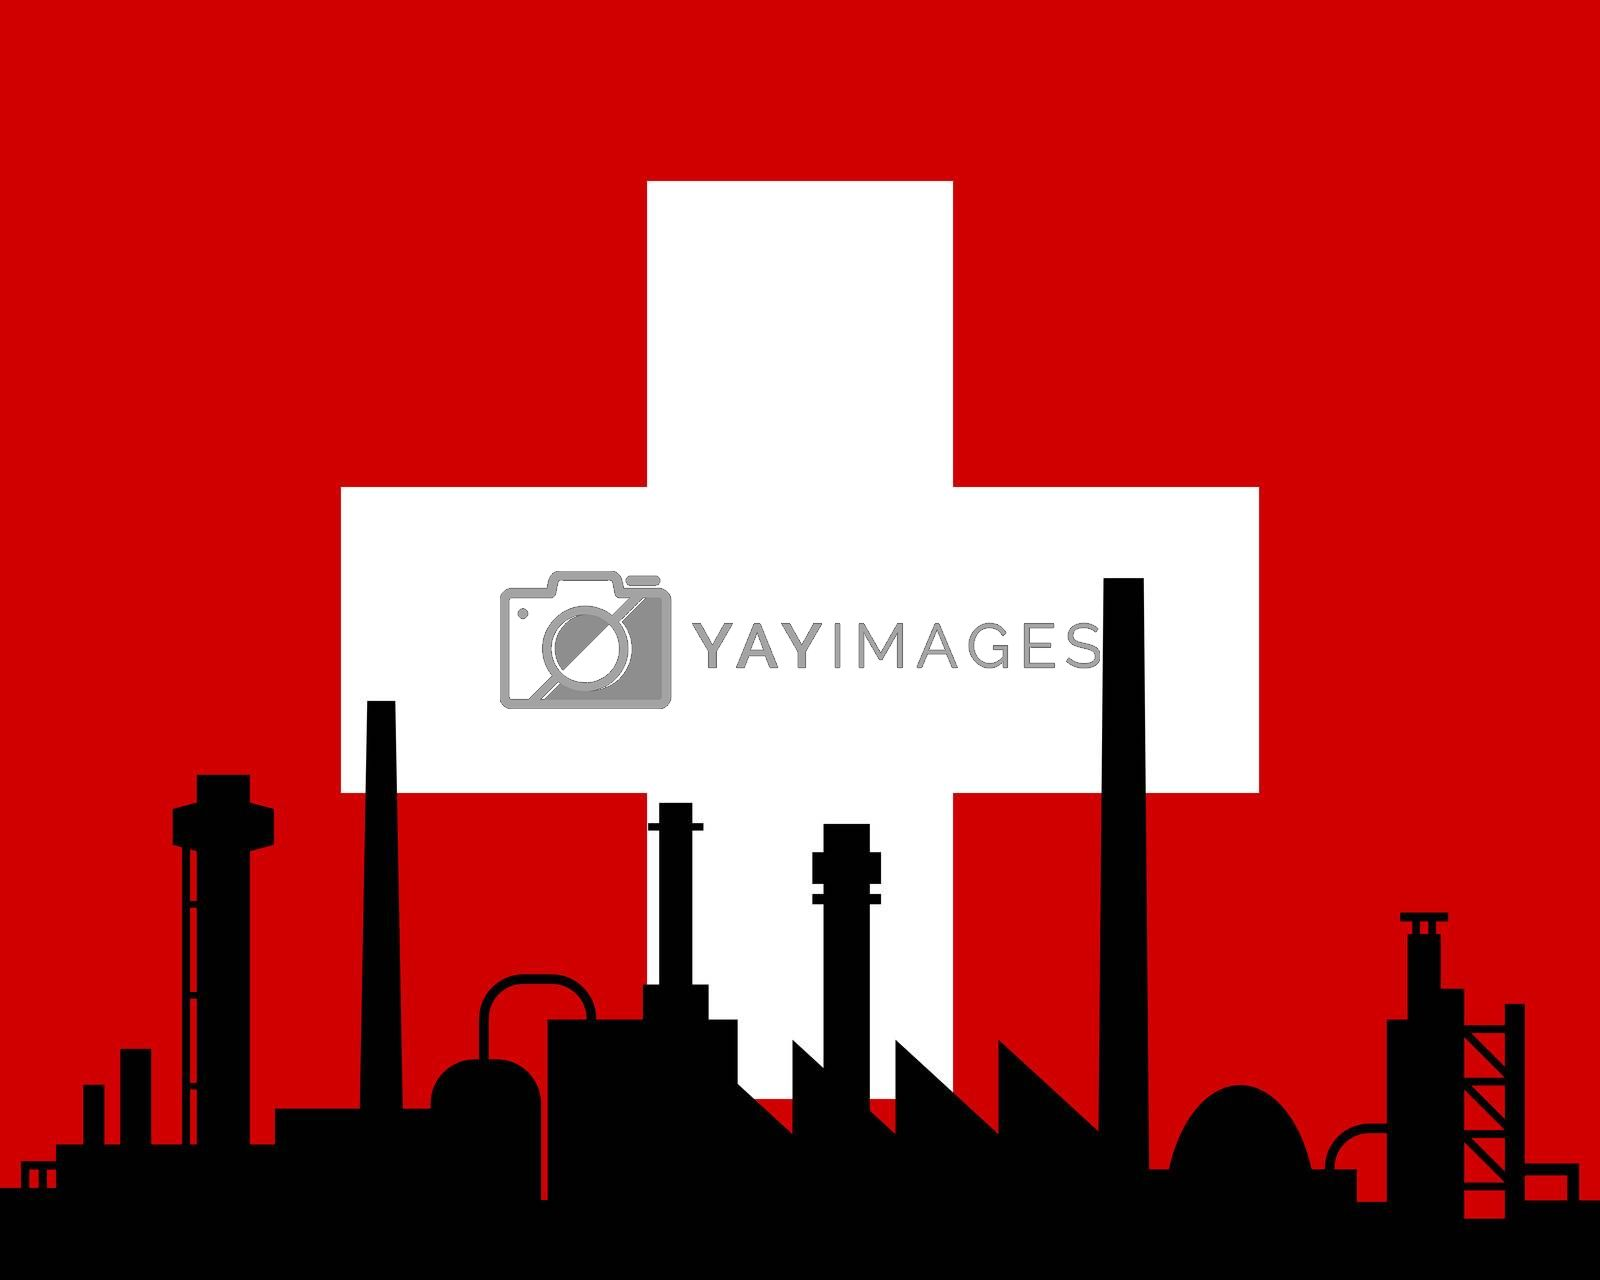 Industry and flag of Switzerland